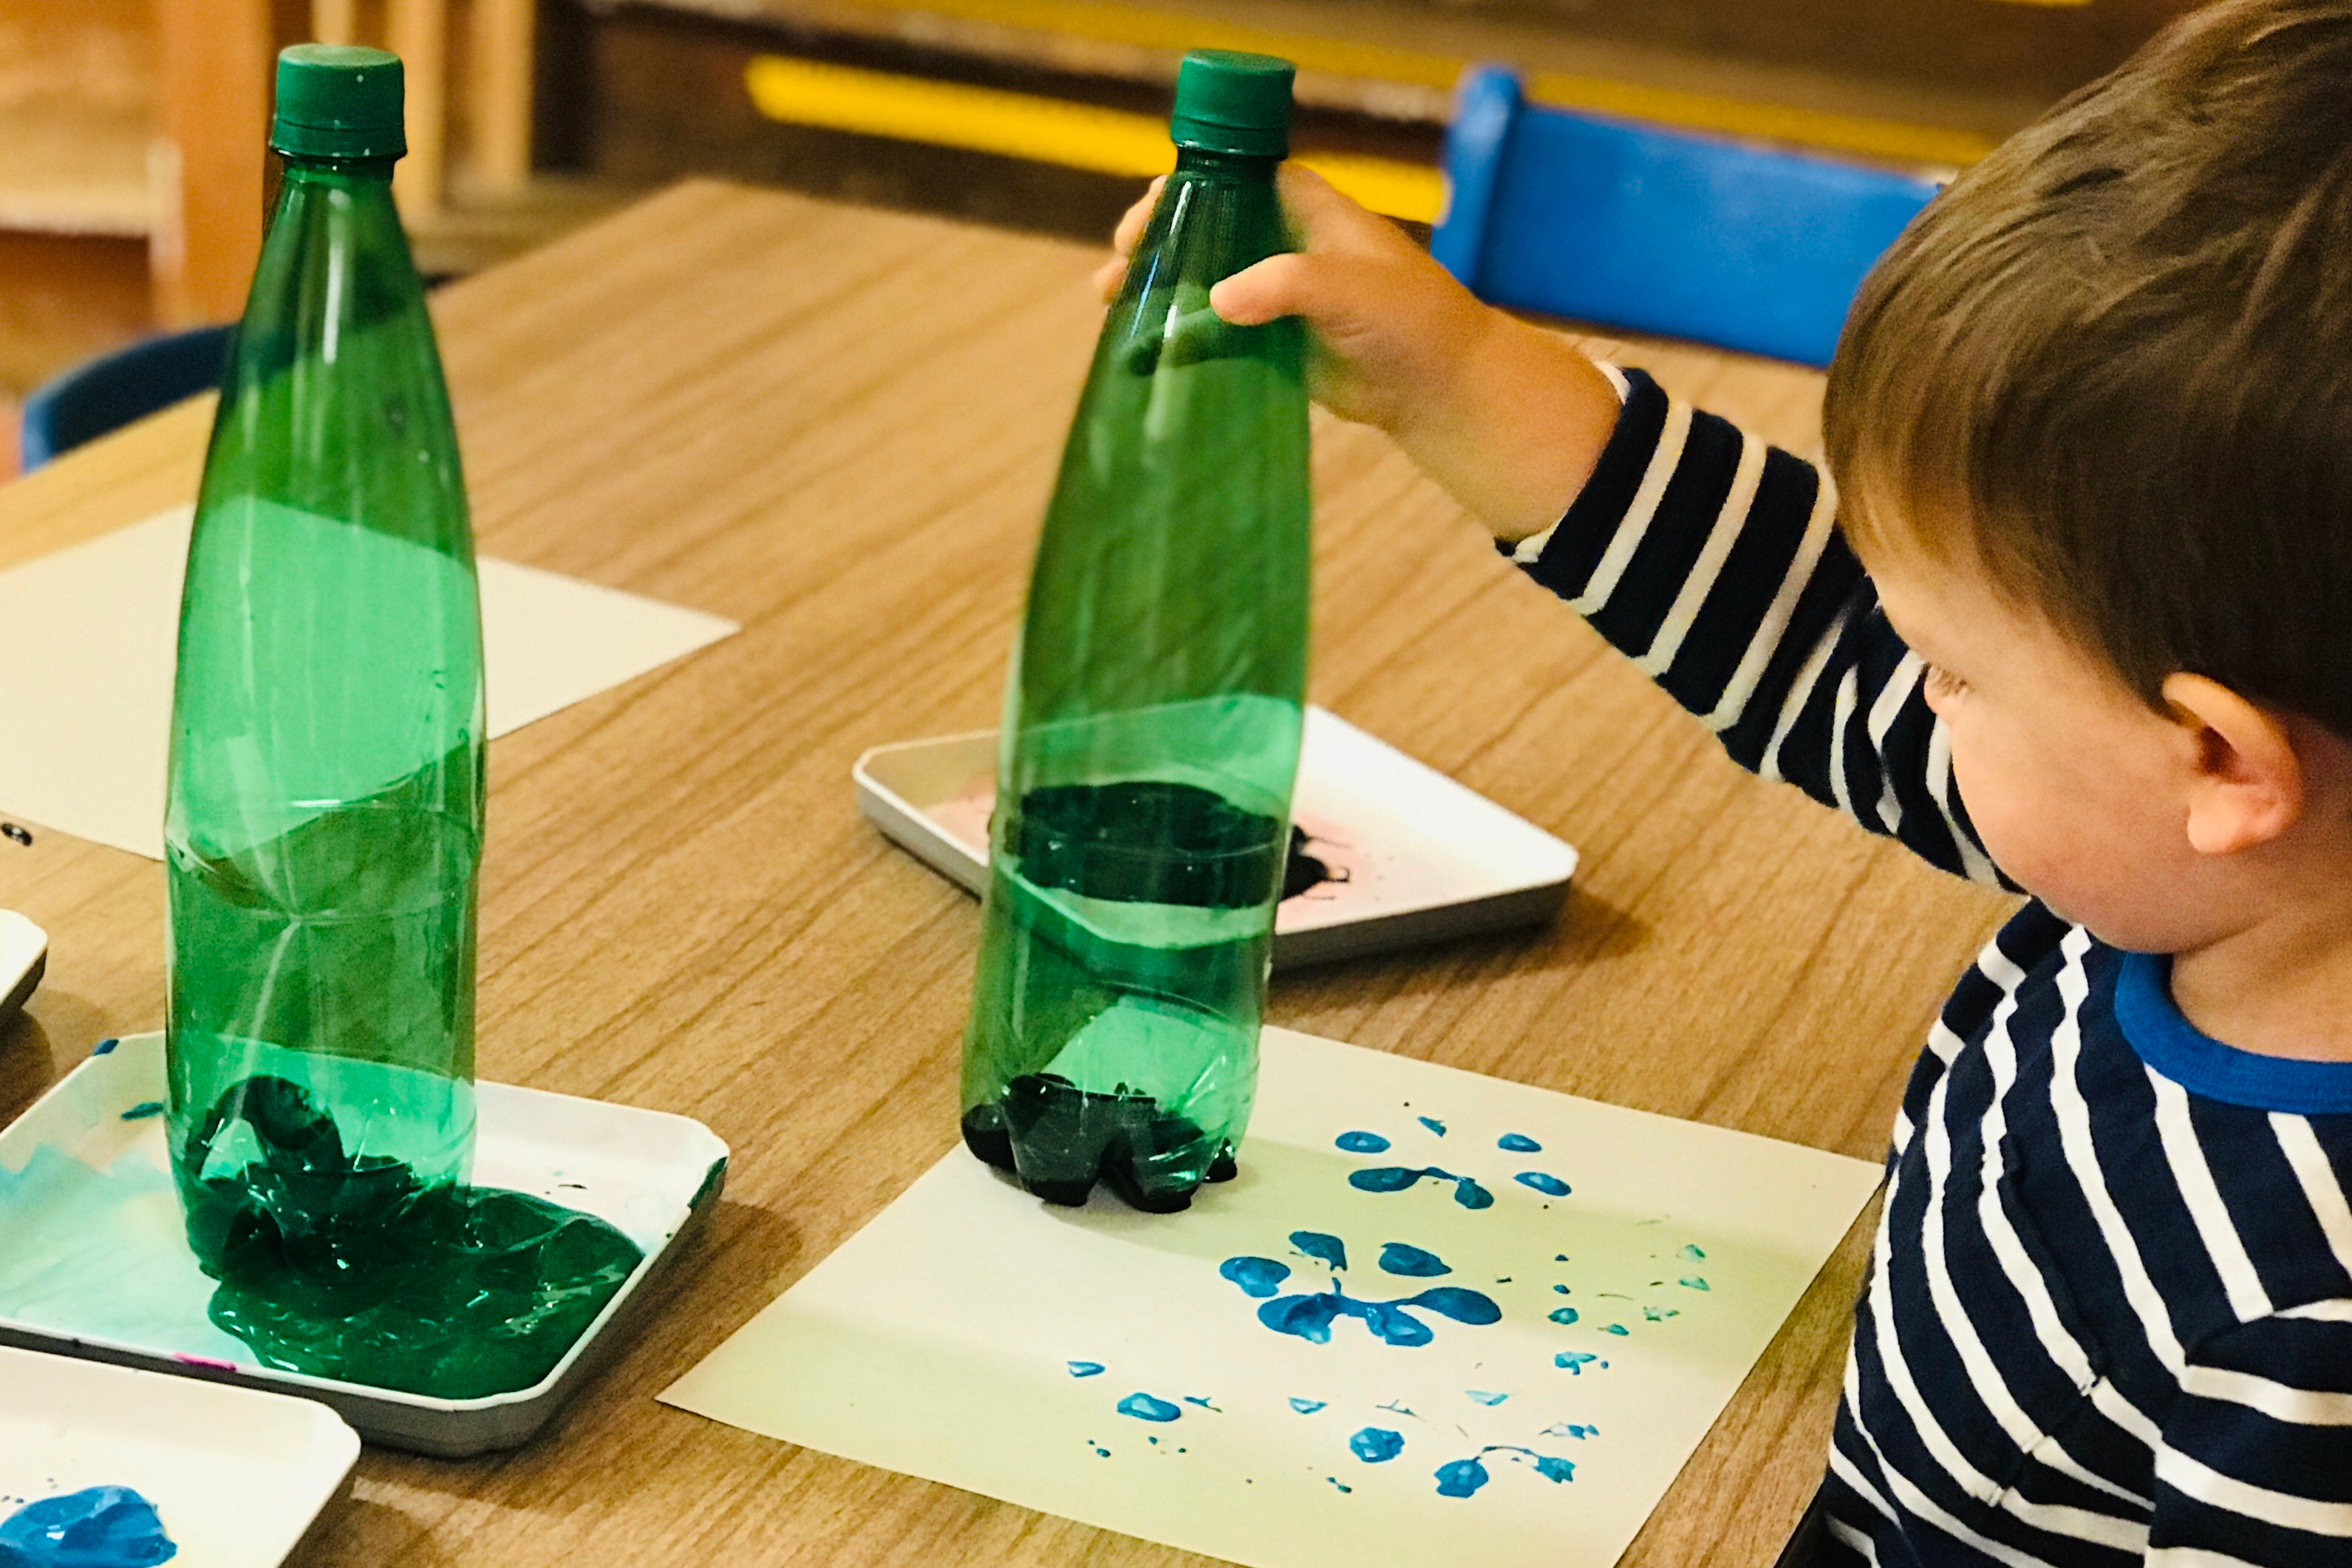 University-Ravenna Cooperative Preschool : Painting flowers with bottles - we love messy art!